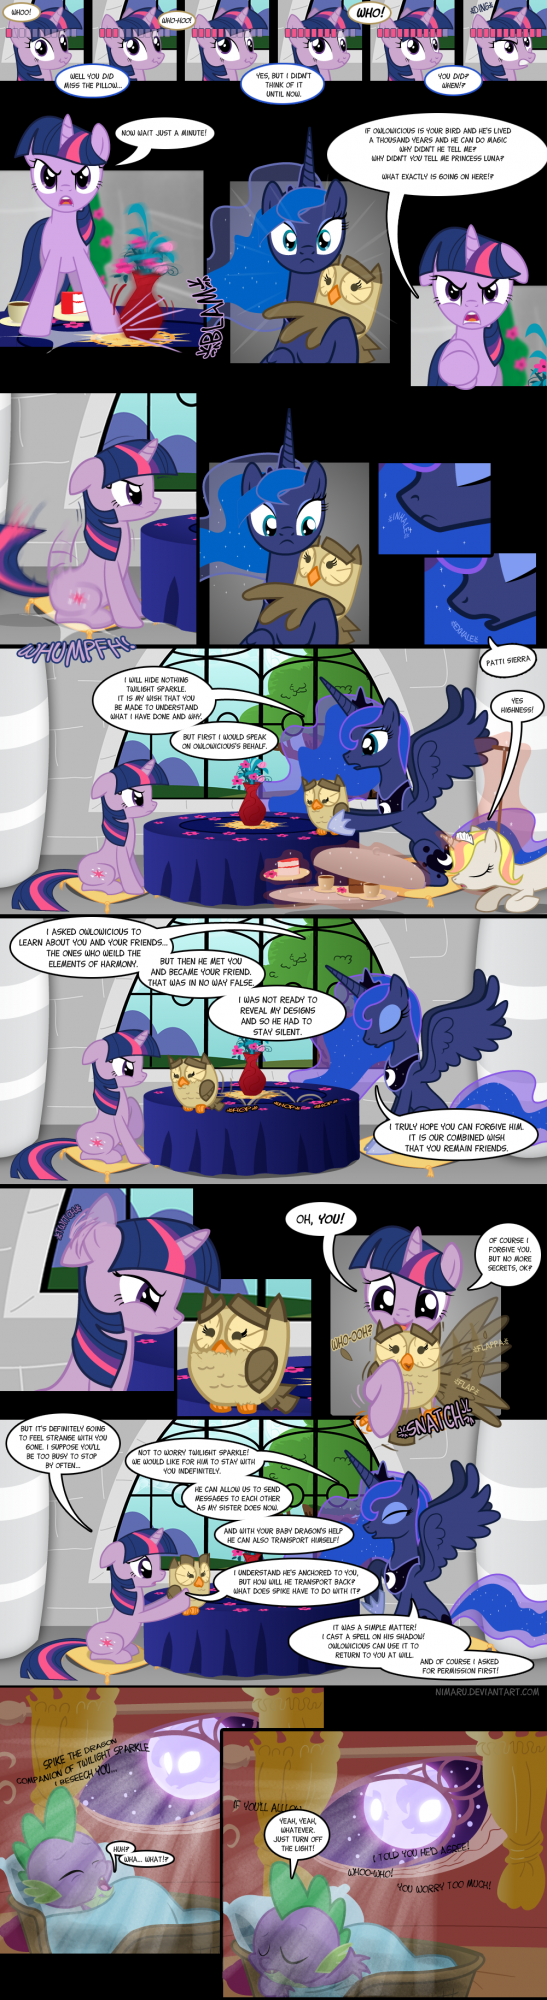 Twilight's Studies - Connections